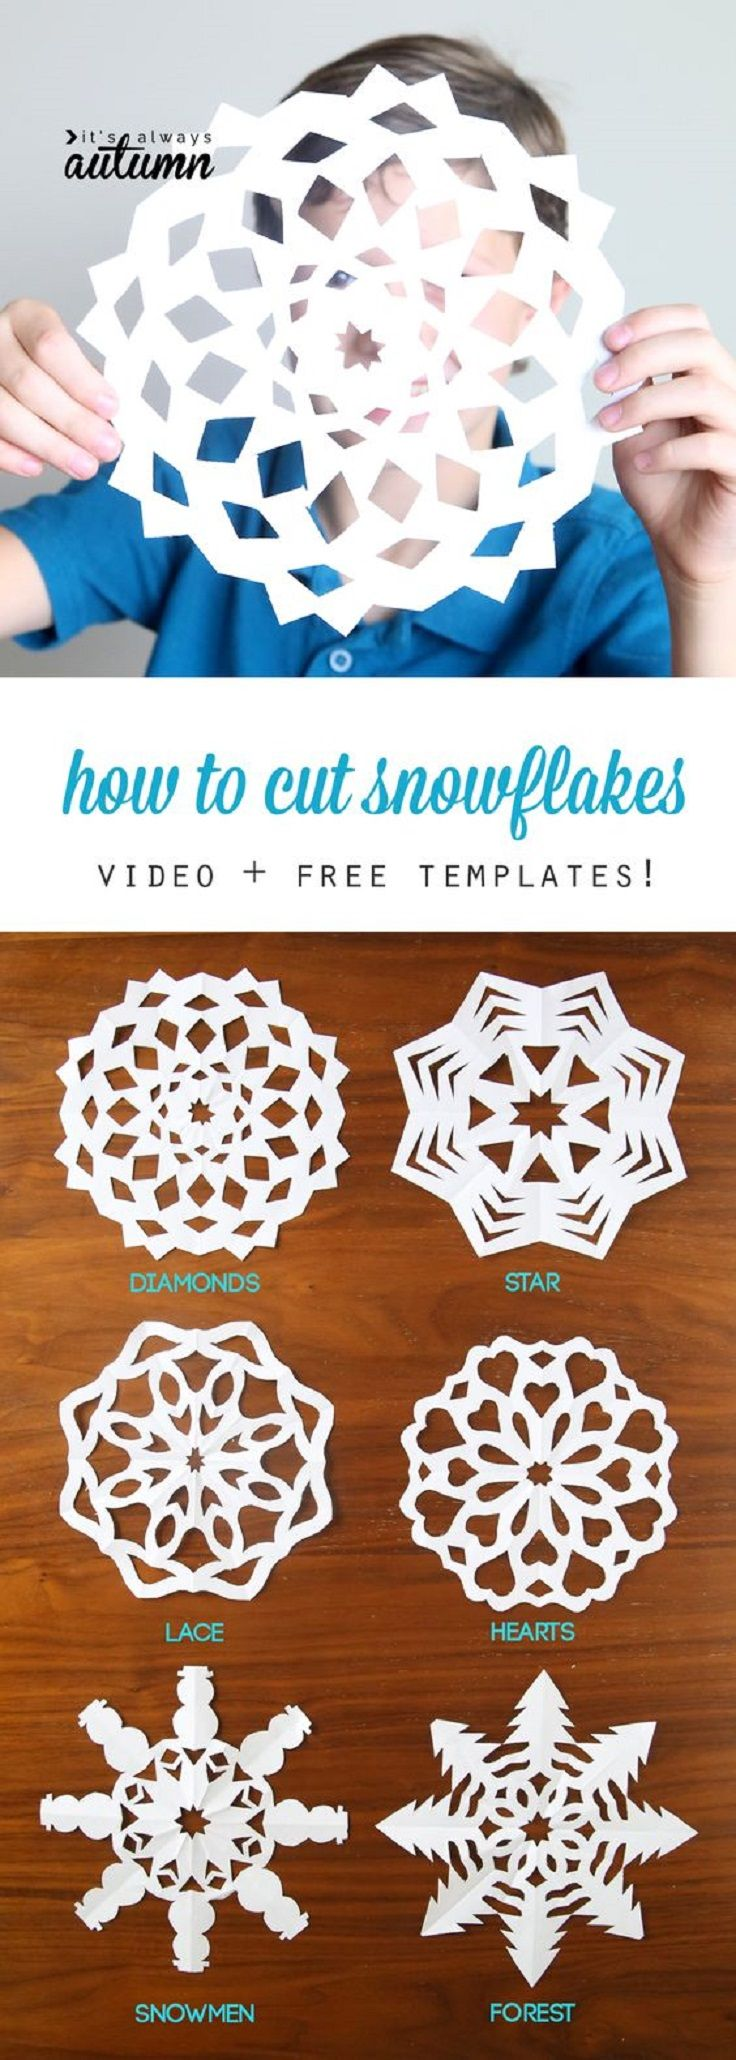 DIY Paper Snowflakes – Video Tutorial + Free Patterns - 11 Kid-Friendly Christmas Crafts To Occupy Your Loved Ones During The Season